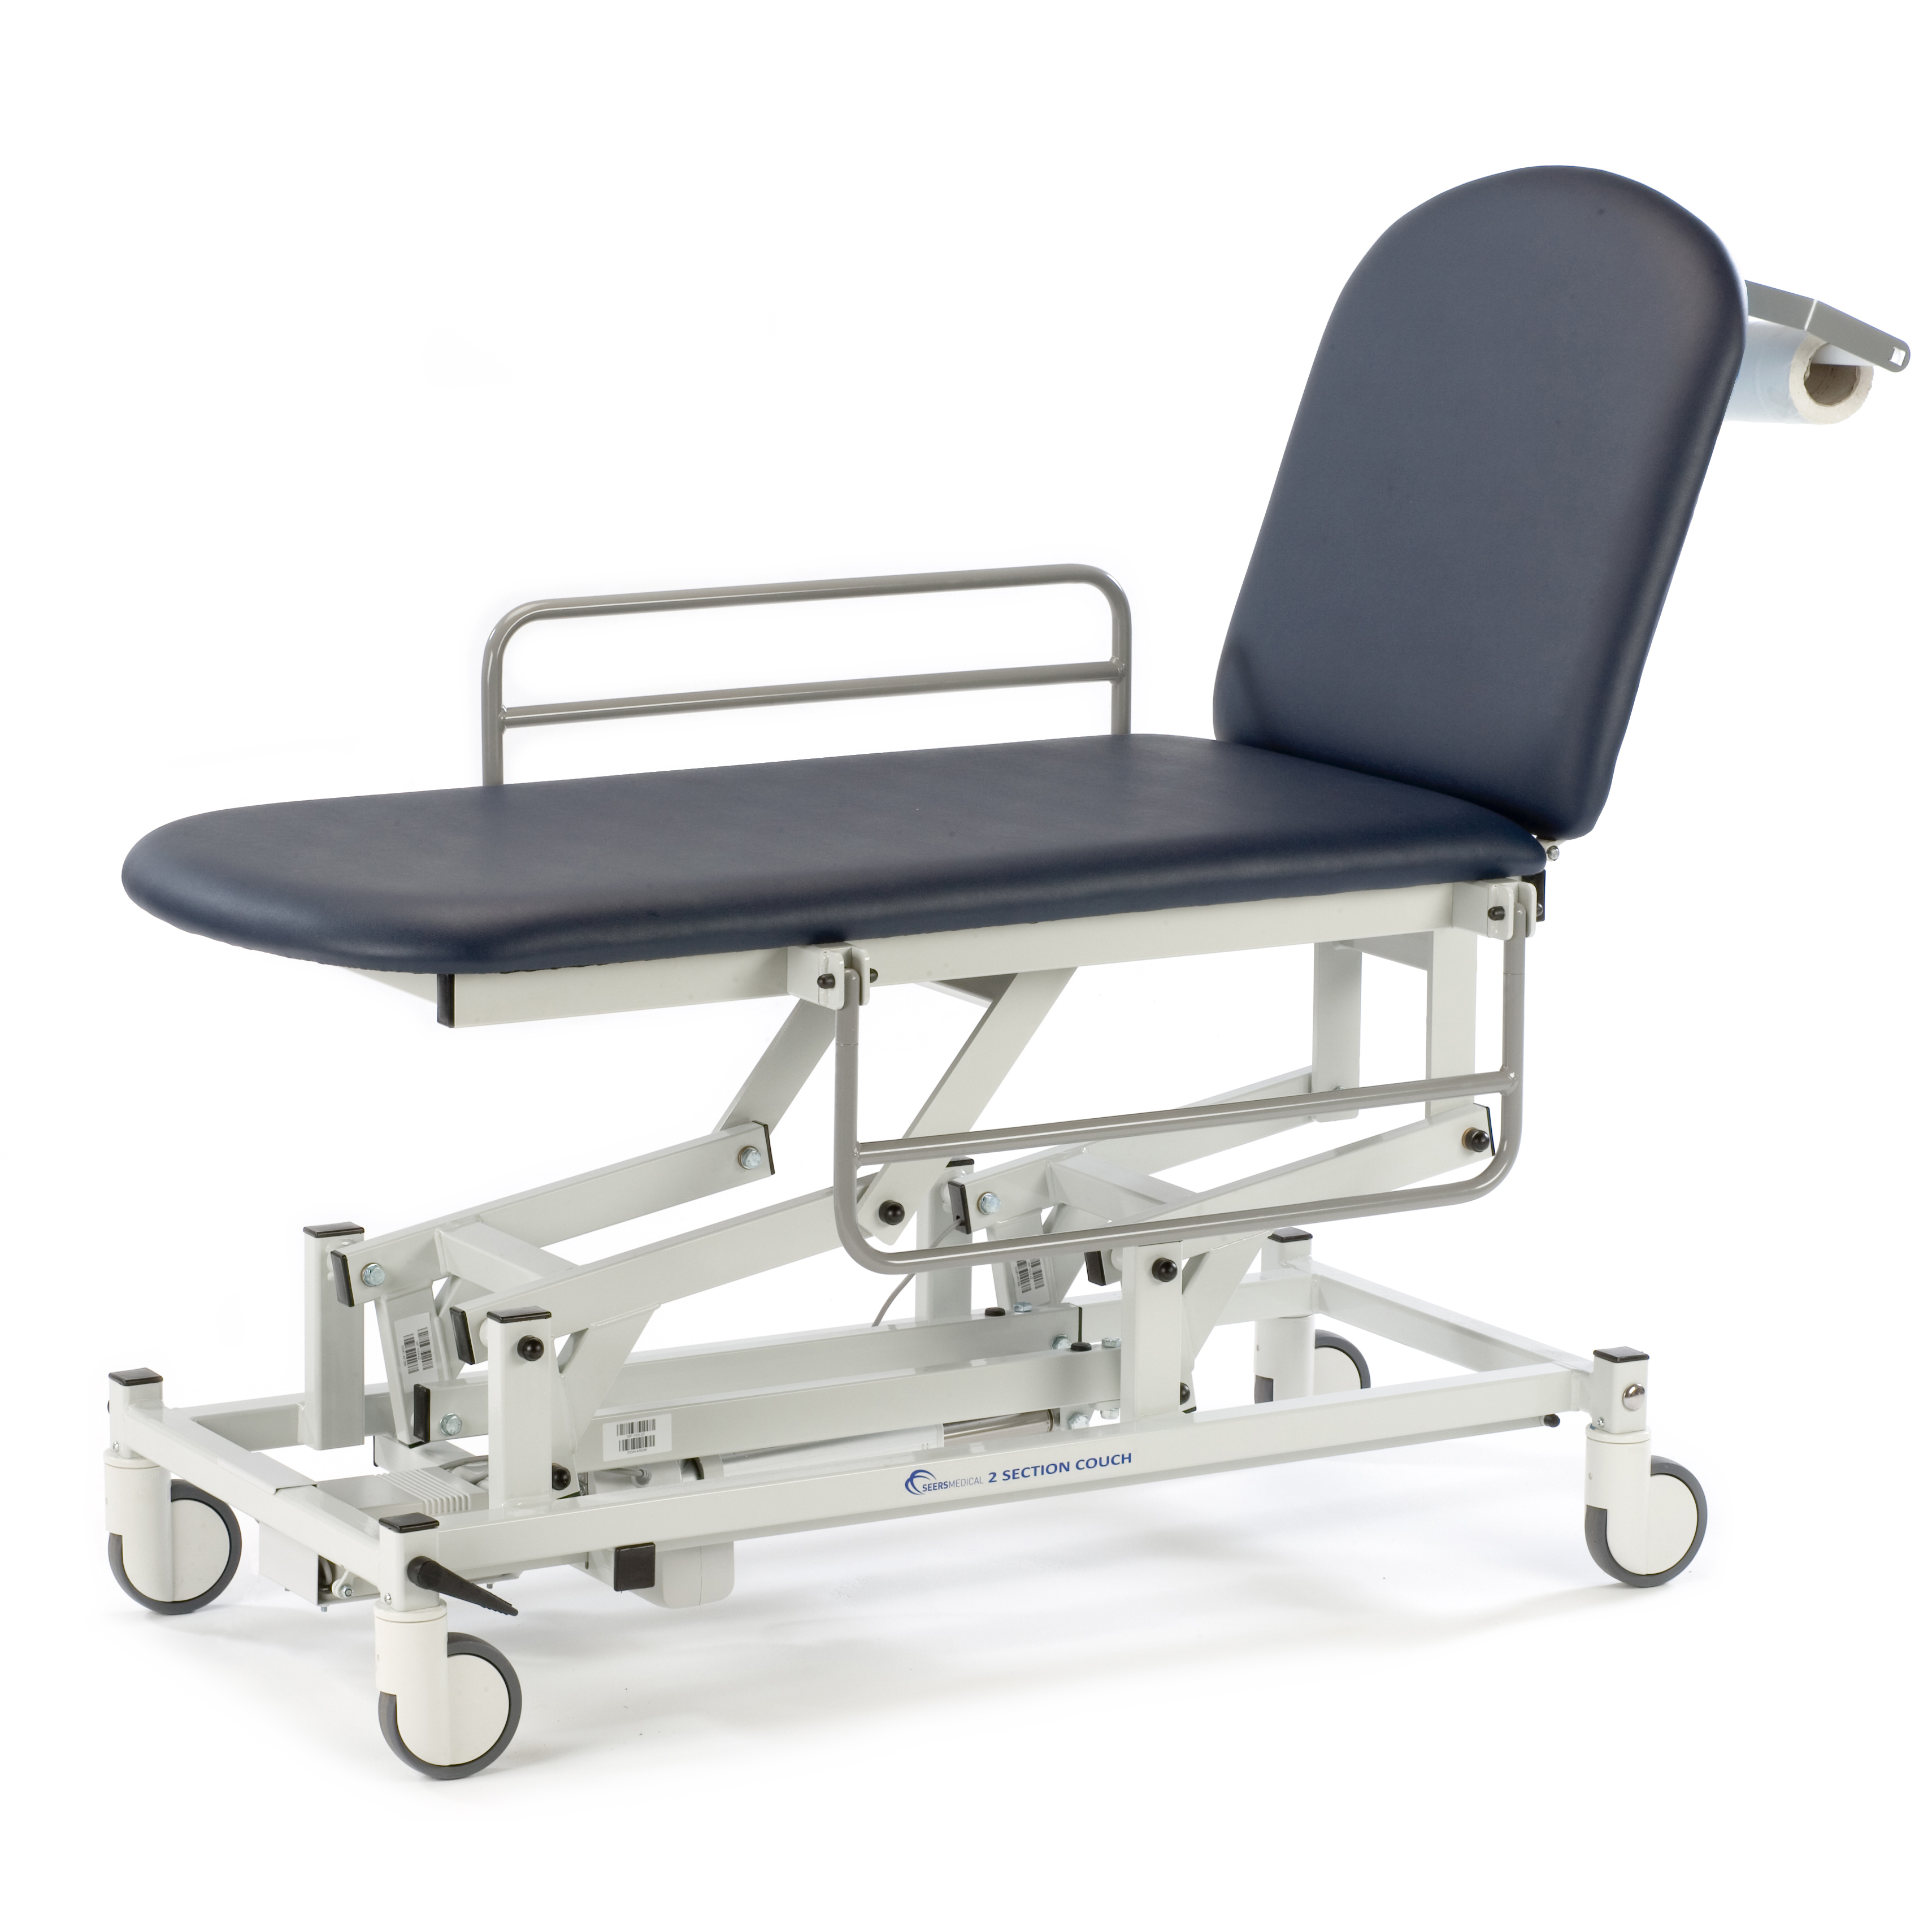 Wondrous Medicare 2 Section Mobile Treatment Couch Seers Medical Cjindustries Chair Design For Home Cjindustriesco